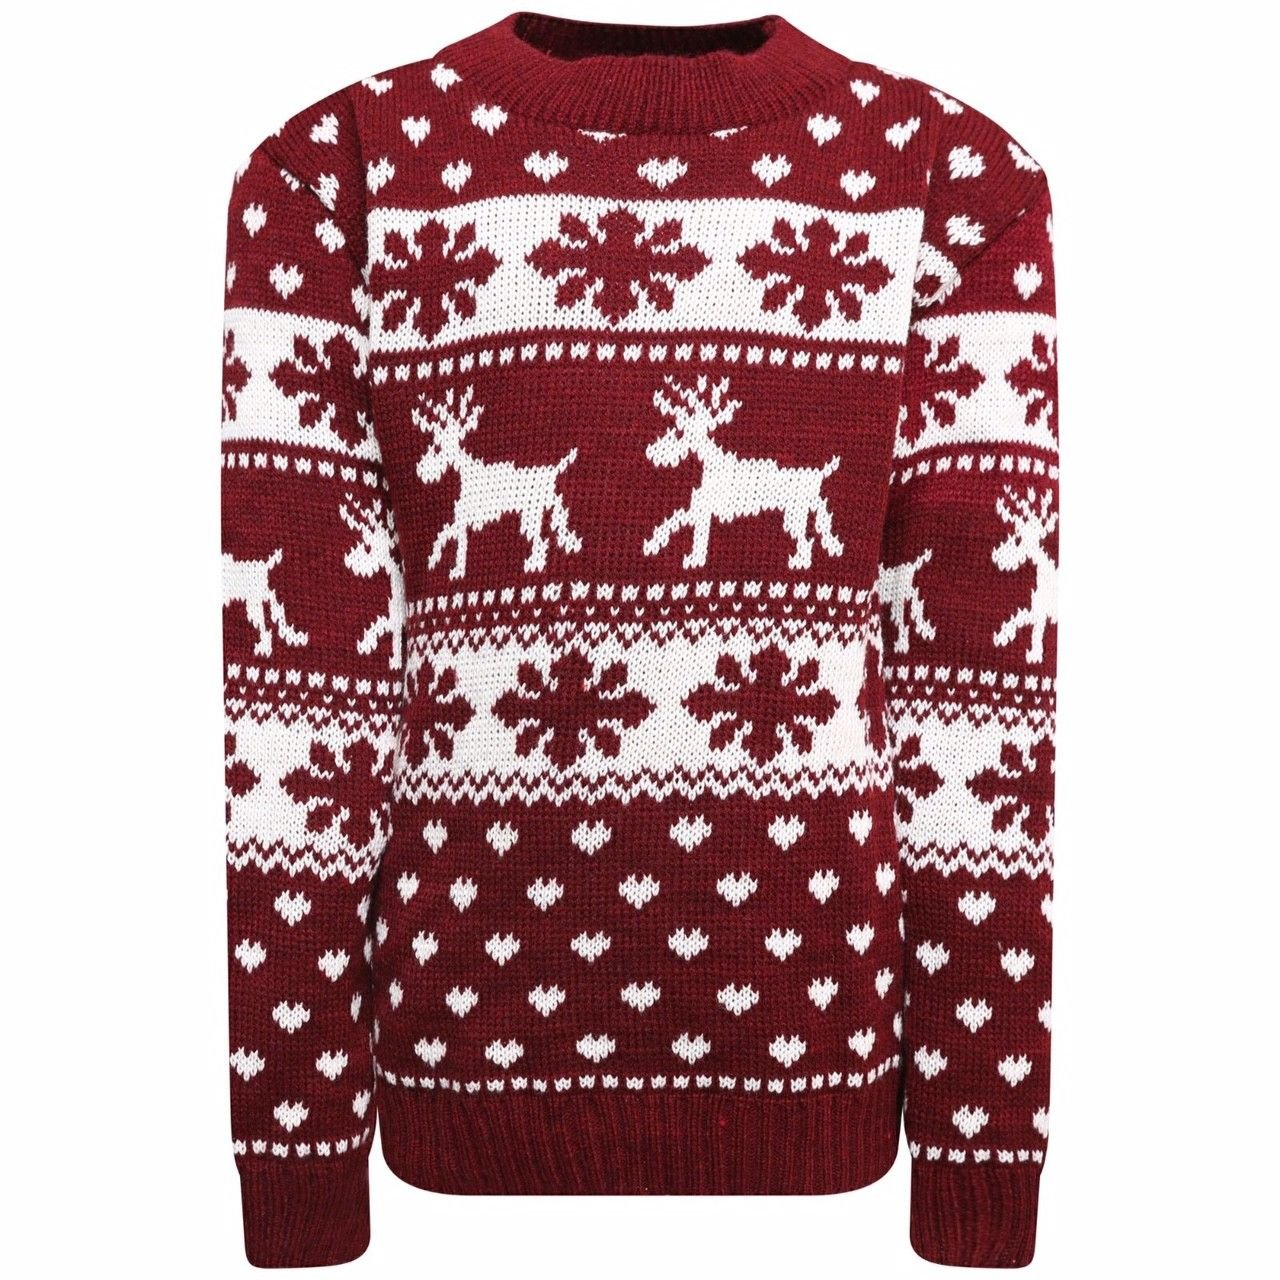 Kids Boys Girls Childerens Knitted Retro Novelty Christmas Xmas Jumper 3-13 Years